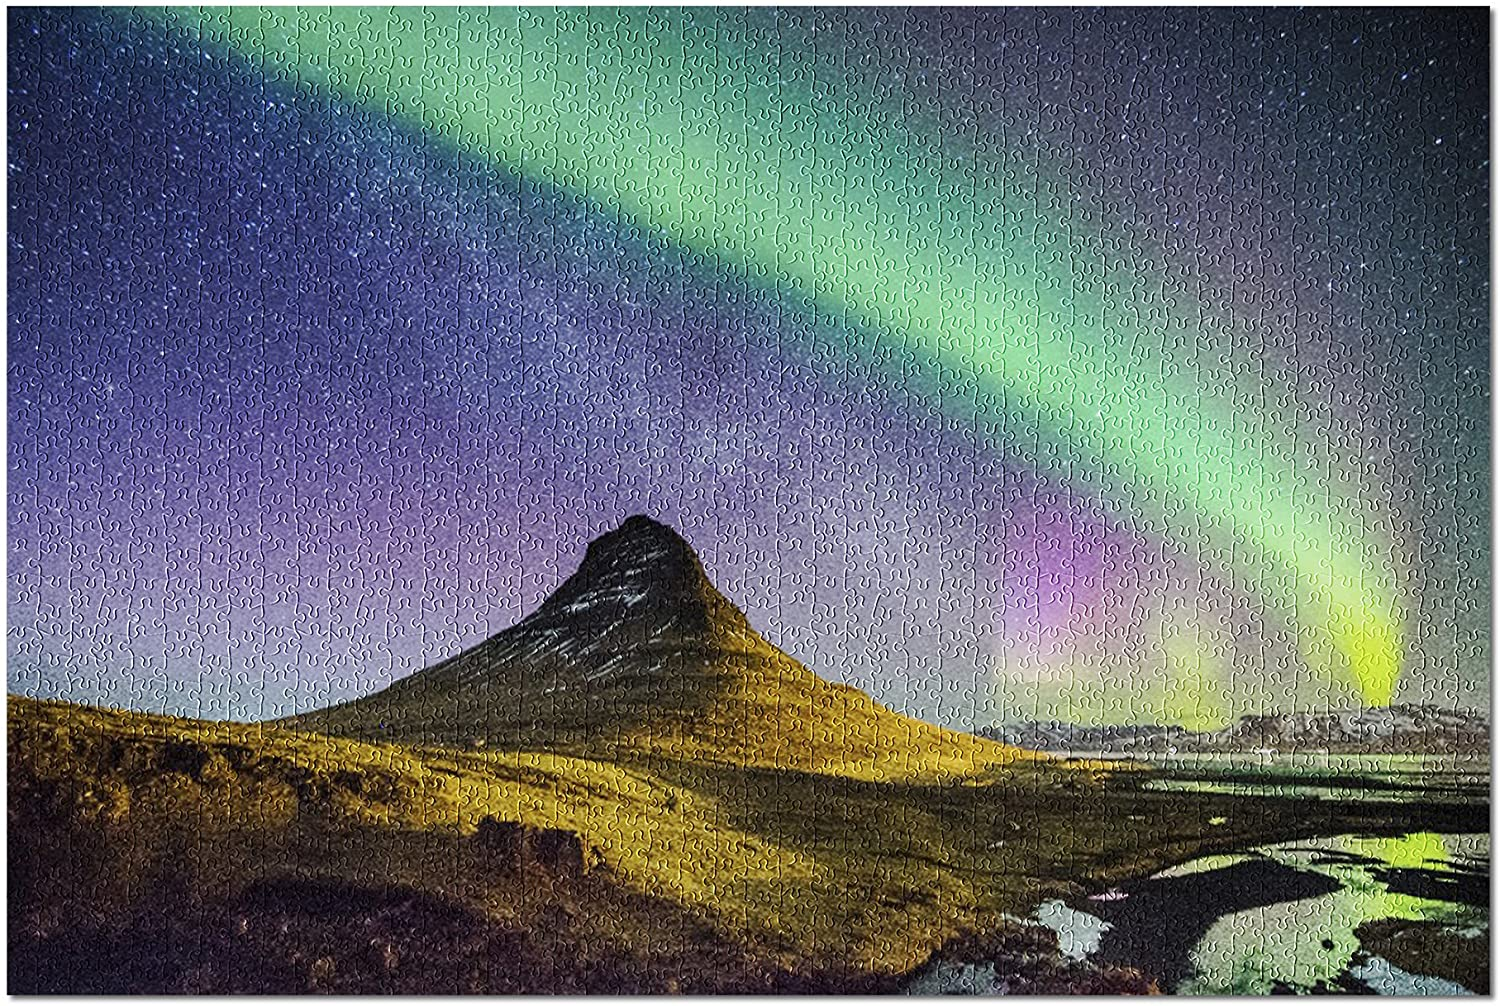 Northern Lights and Milky Way (Premium 1000 Piece Jigsaw Puzzle for Adults, 19x27)